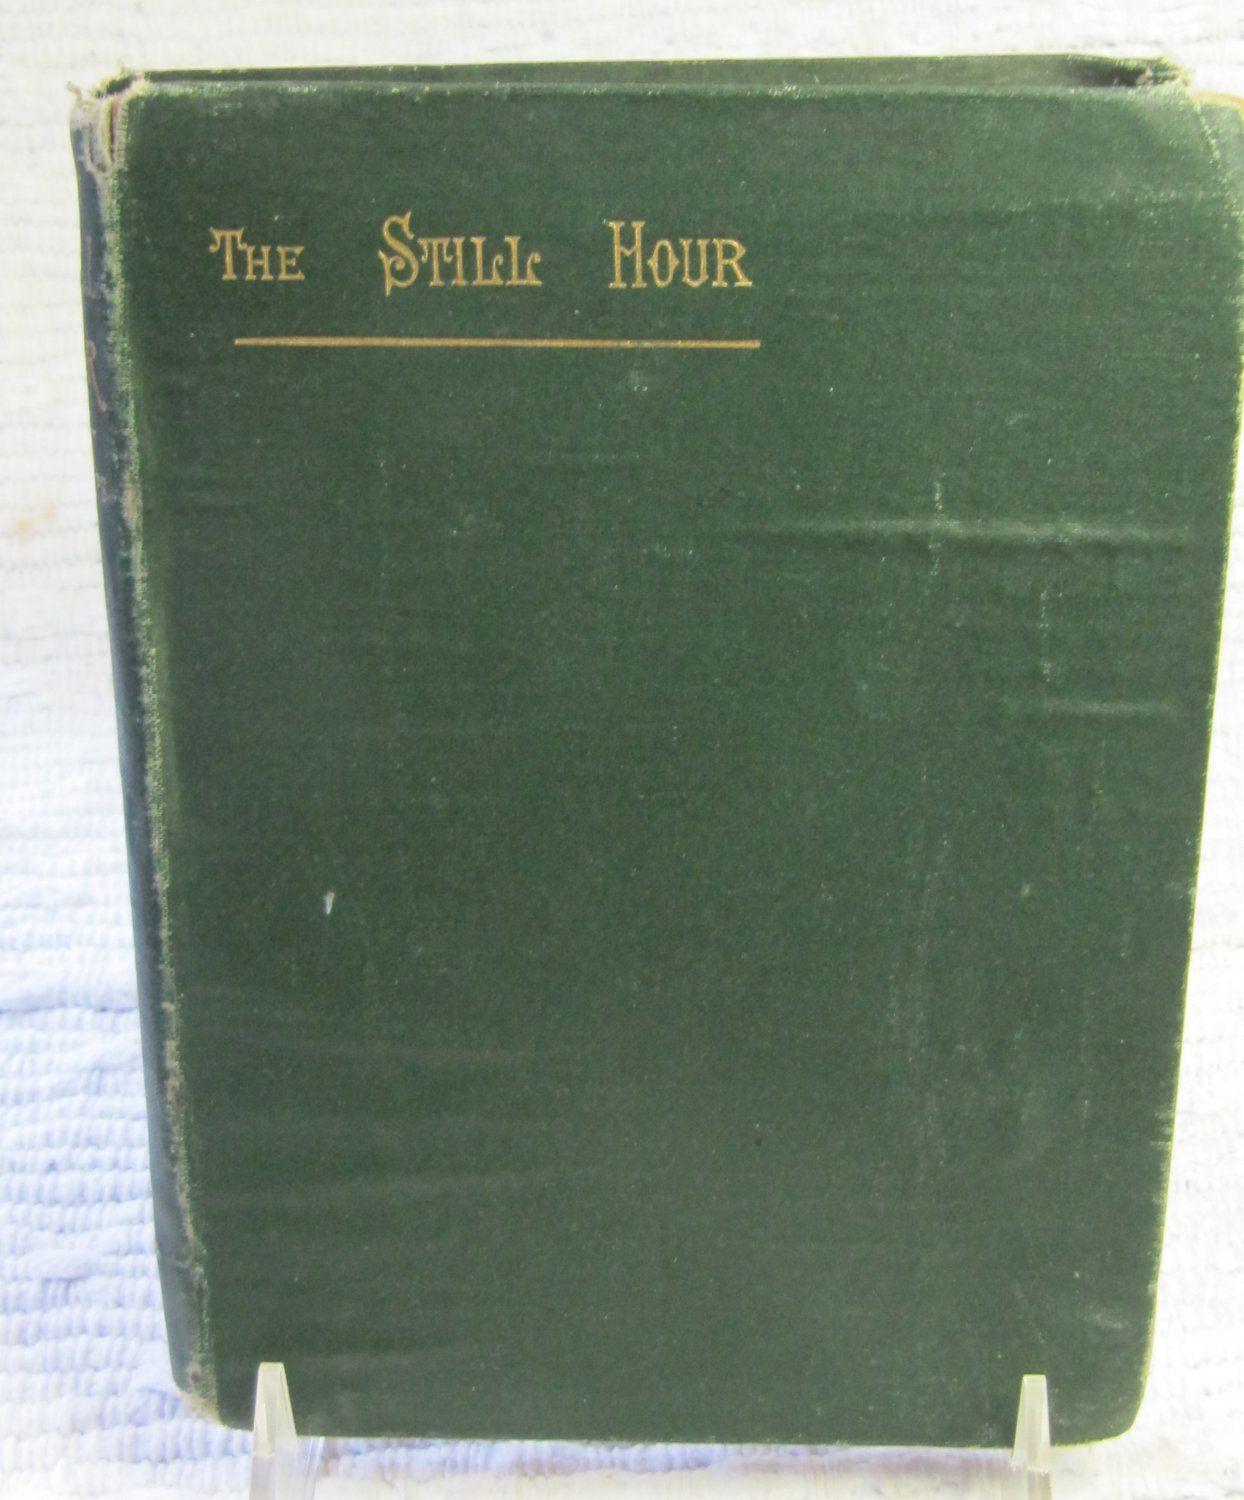 Original Antique c 1885 The Still Hour Hardcover Prayer Book Religious Meditations by Austin Phelps